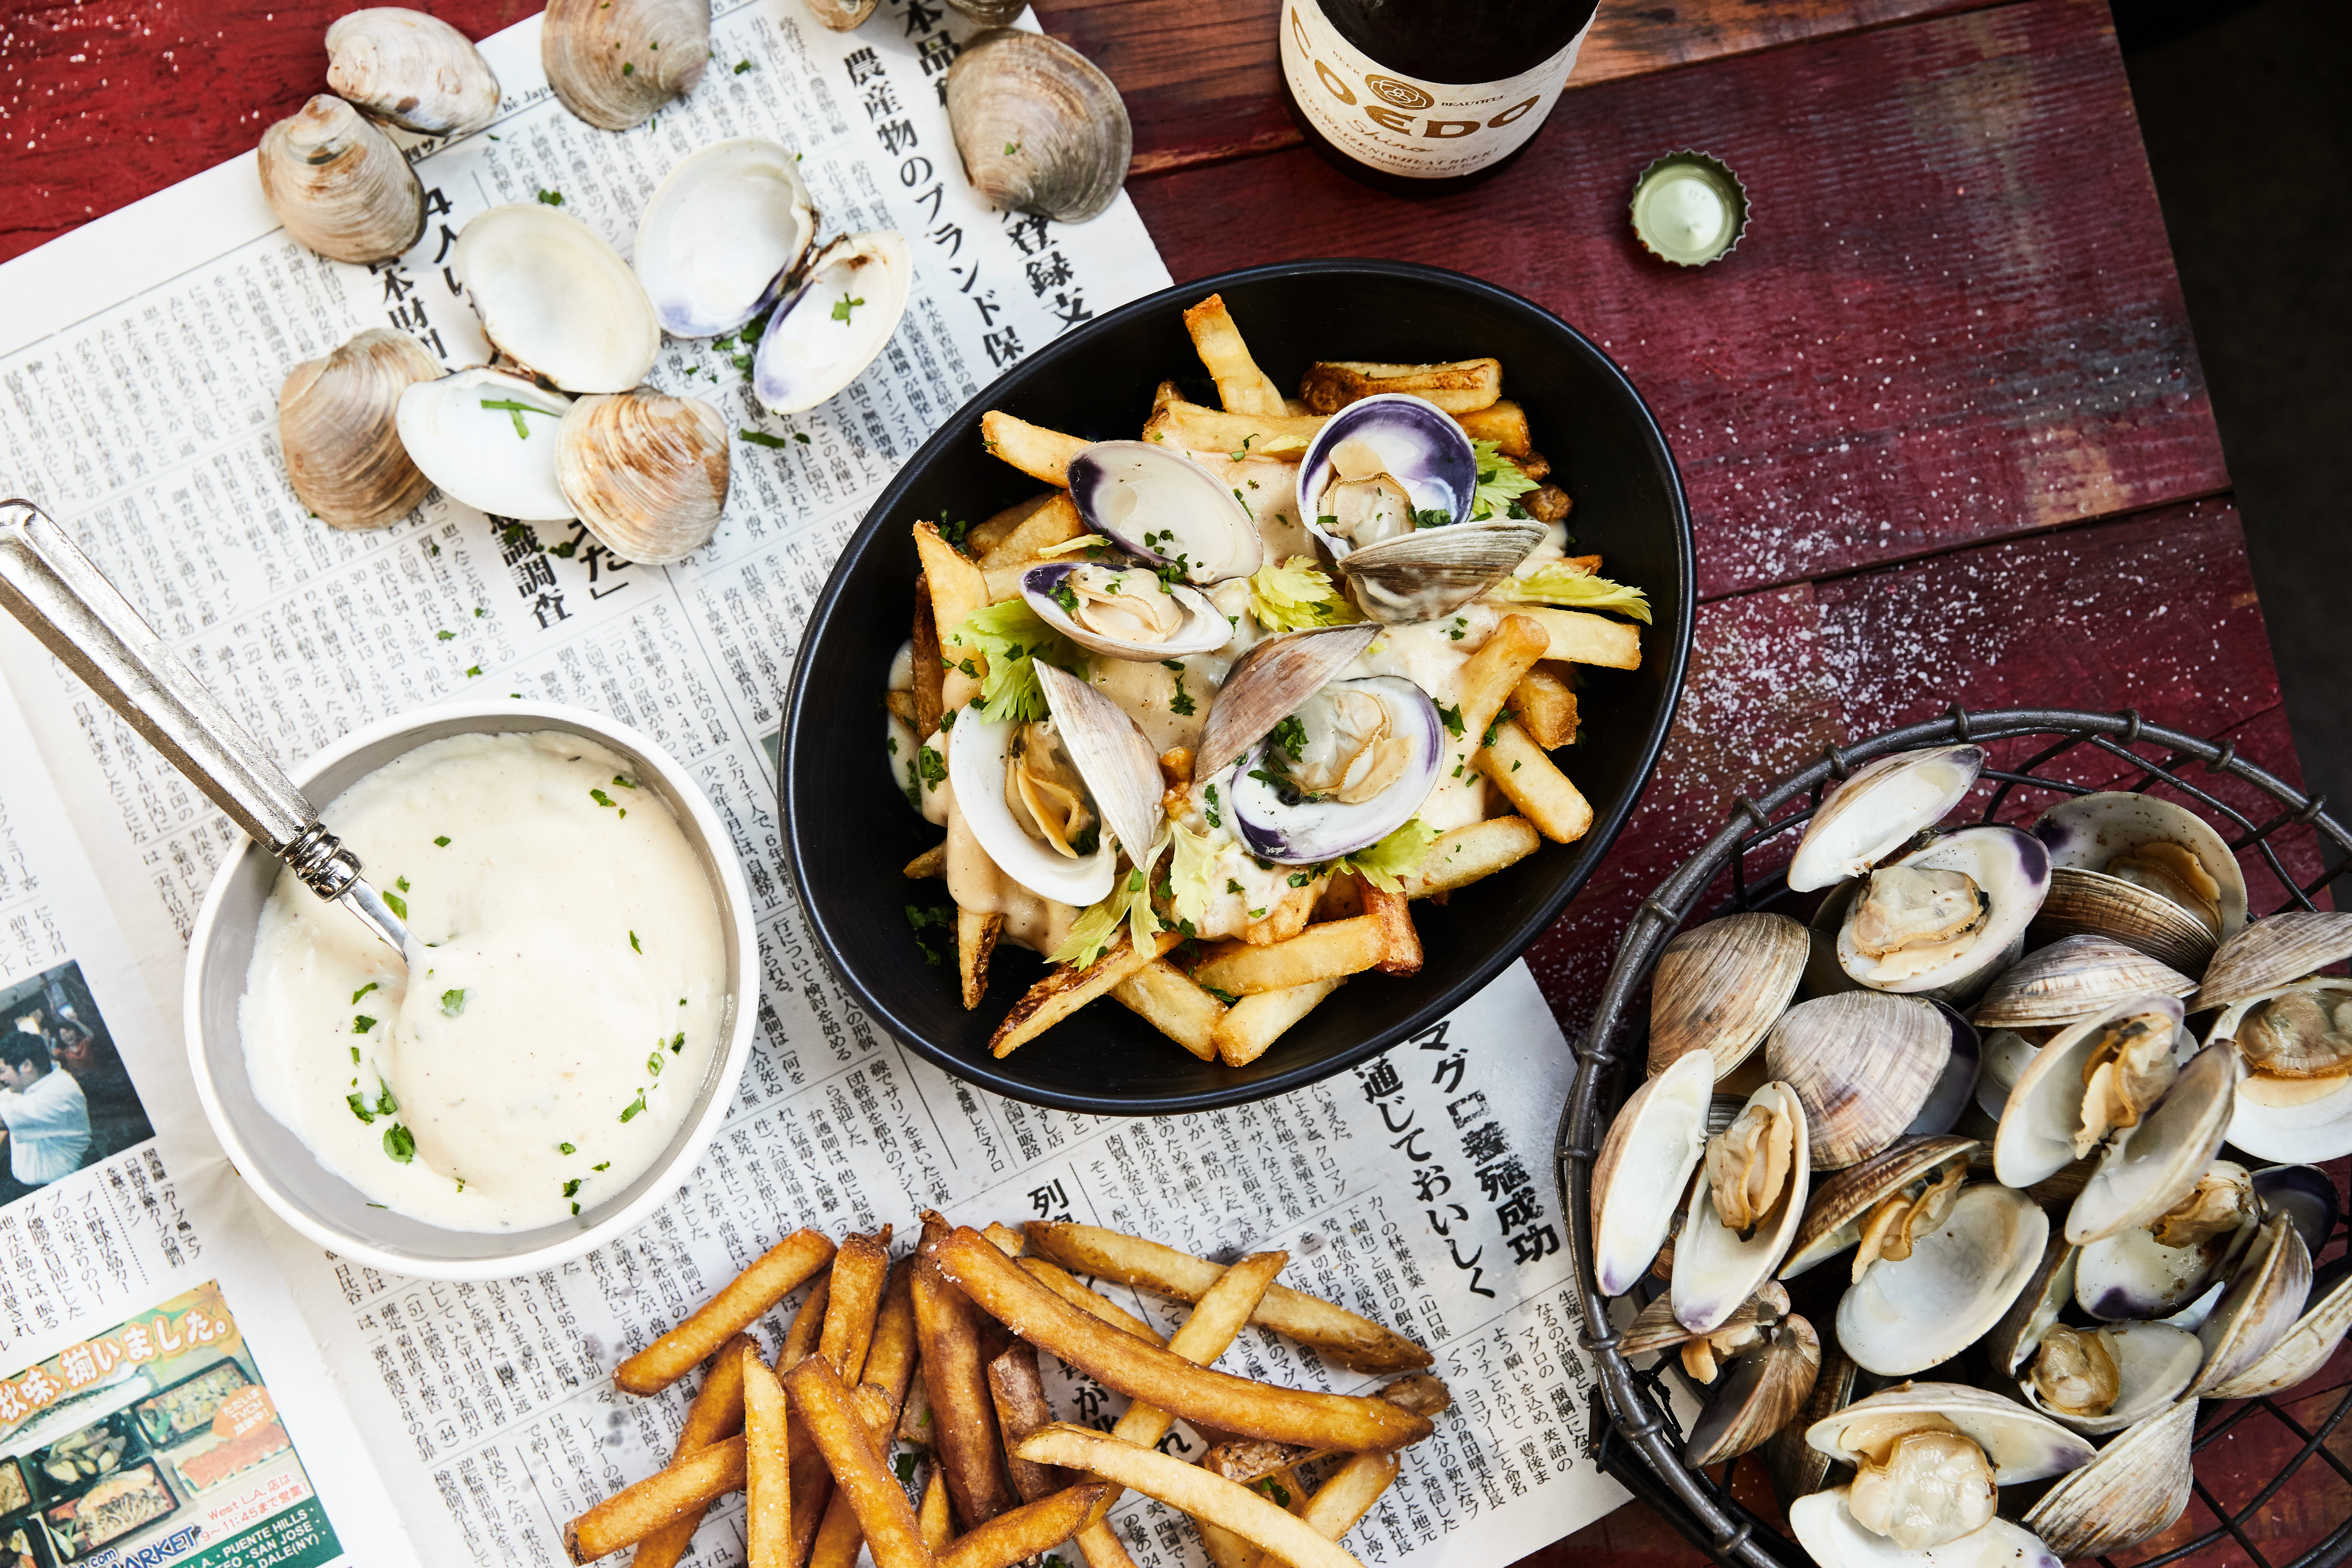 Where To Eat With A Third-Tier Friend - Los Angeles - The